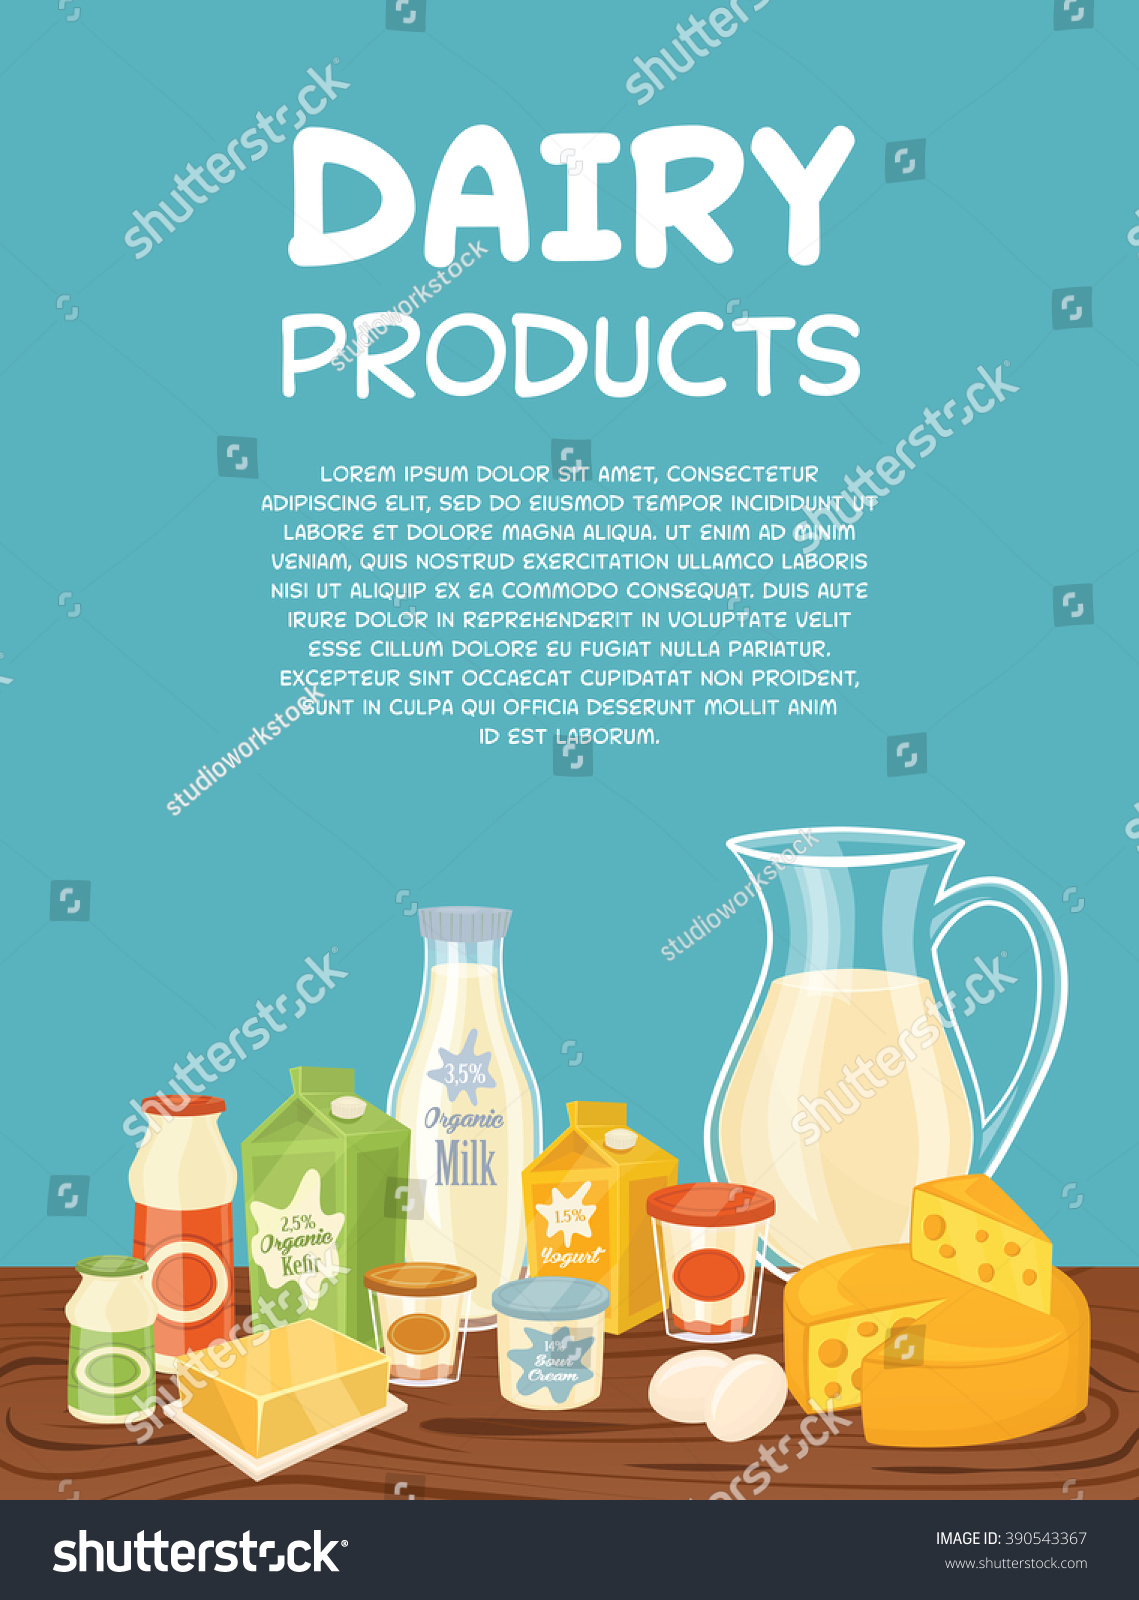 Dairy Products Poster Template Vector Illustration Stock Vector ...